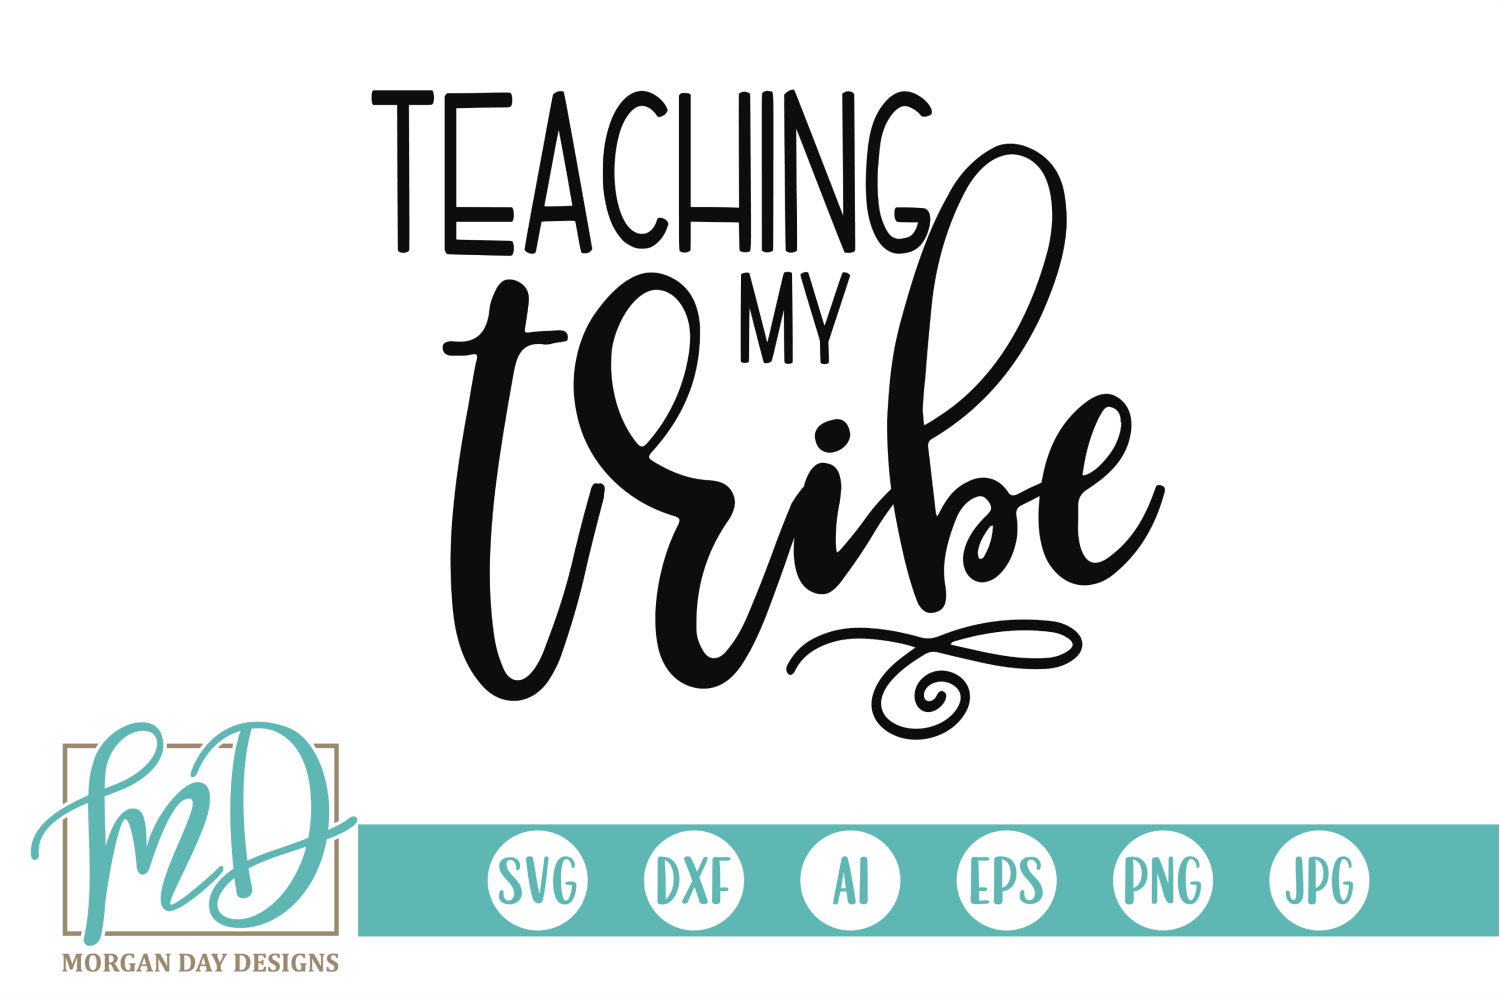 Download Free Teaching My Tribe Graphic By Morgan Day Designs Creative Fabrica for Cricut Explore, Silhouette and other cutting machines.